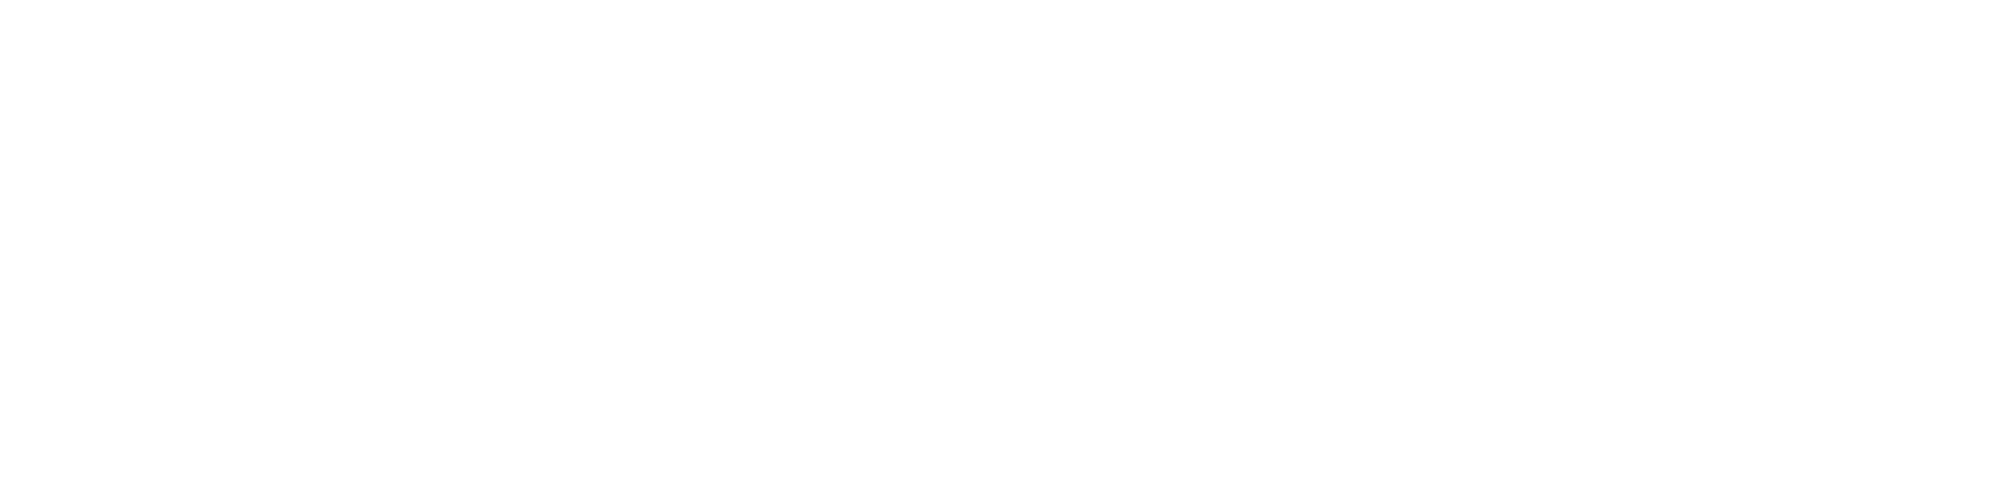 주식회사  Funbound Co., Ltd